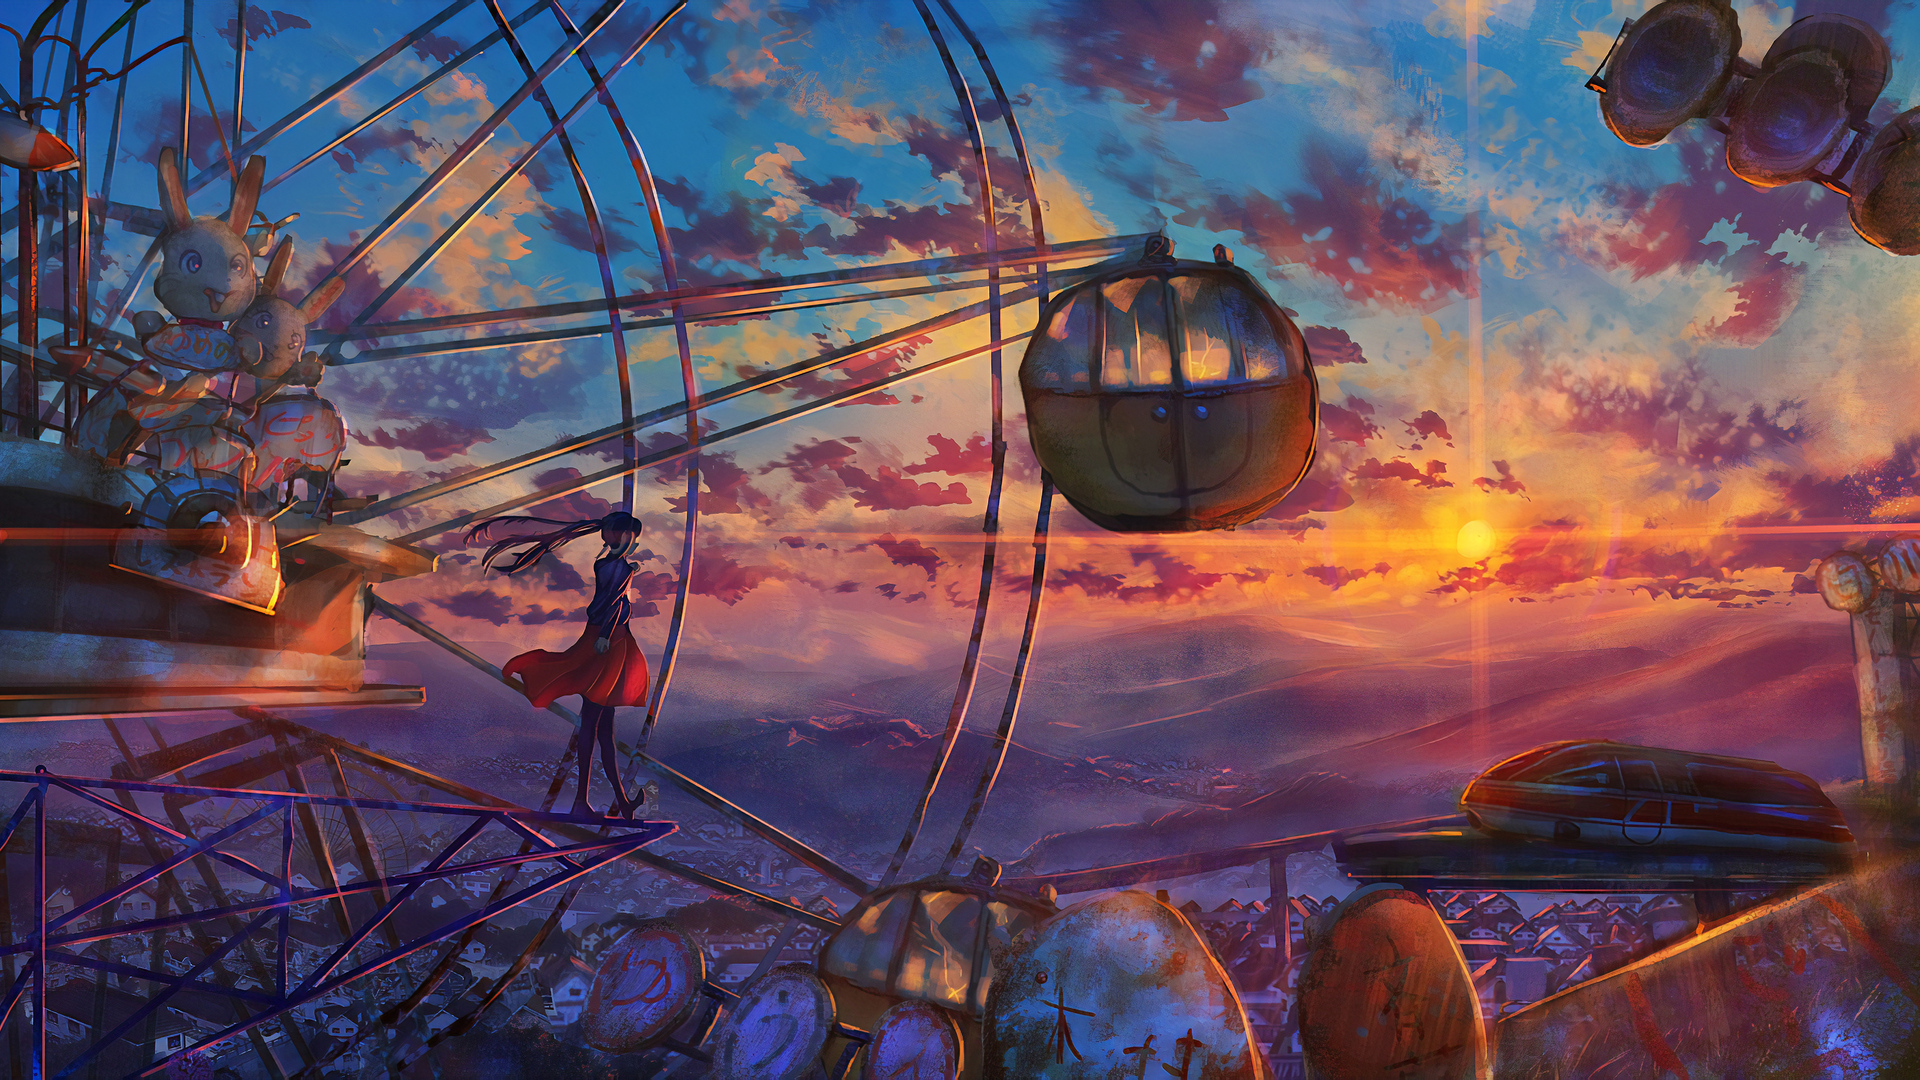 1920x1080 Anime Ferris Wheel Painting Laptop Full Hd 1080p